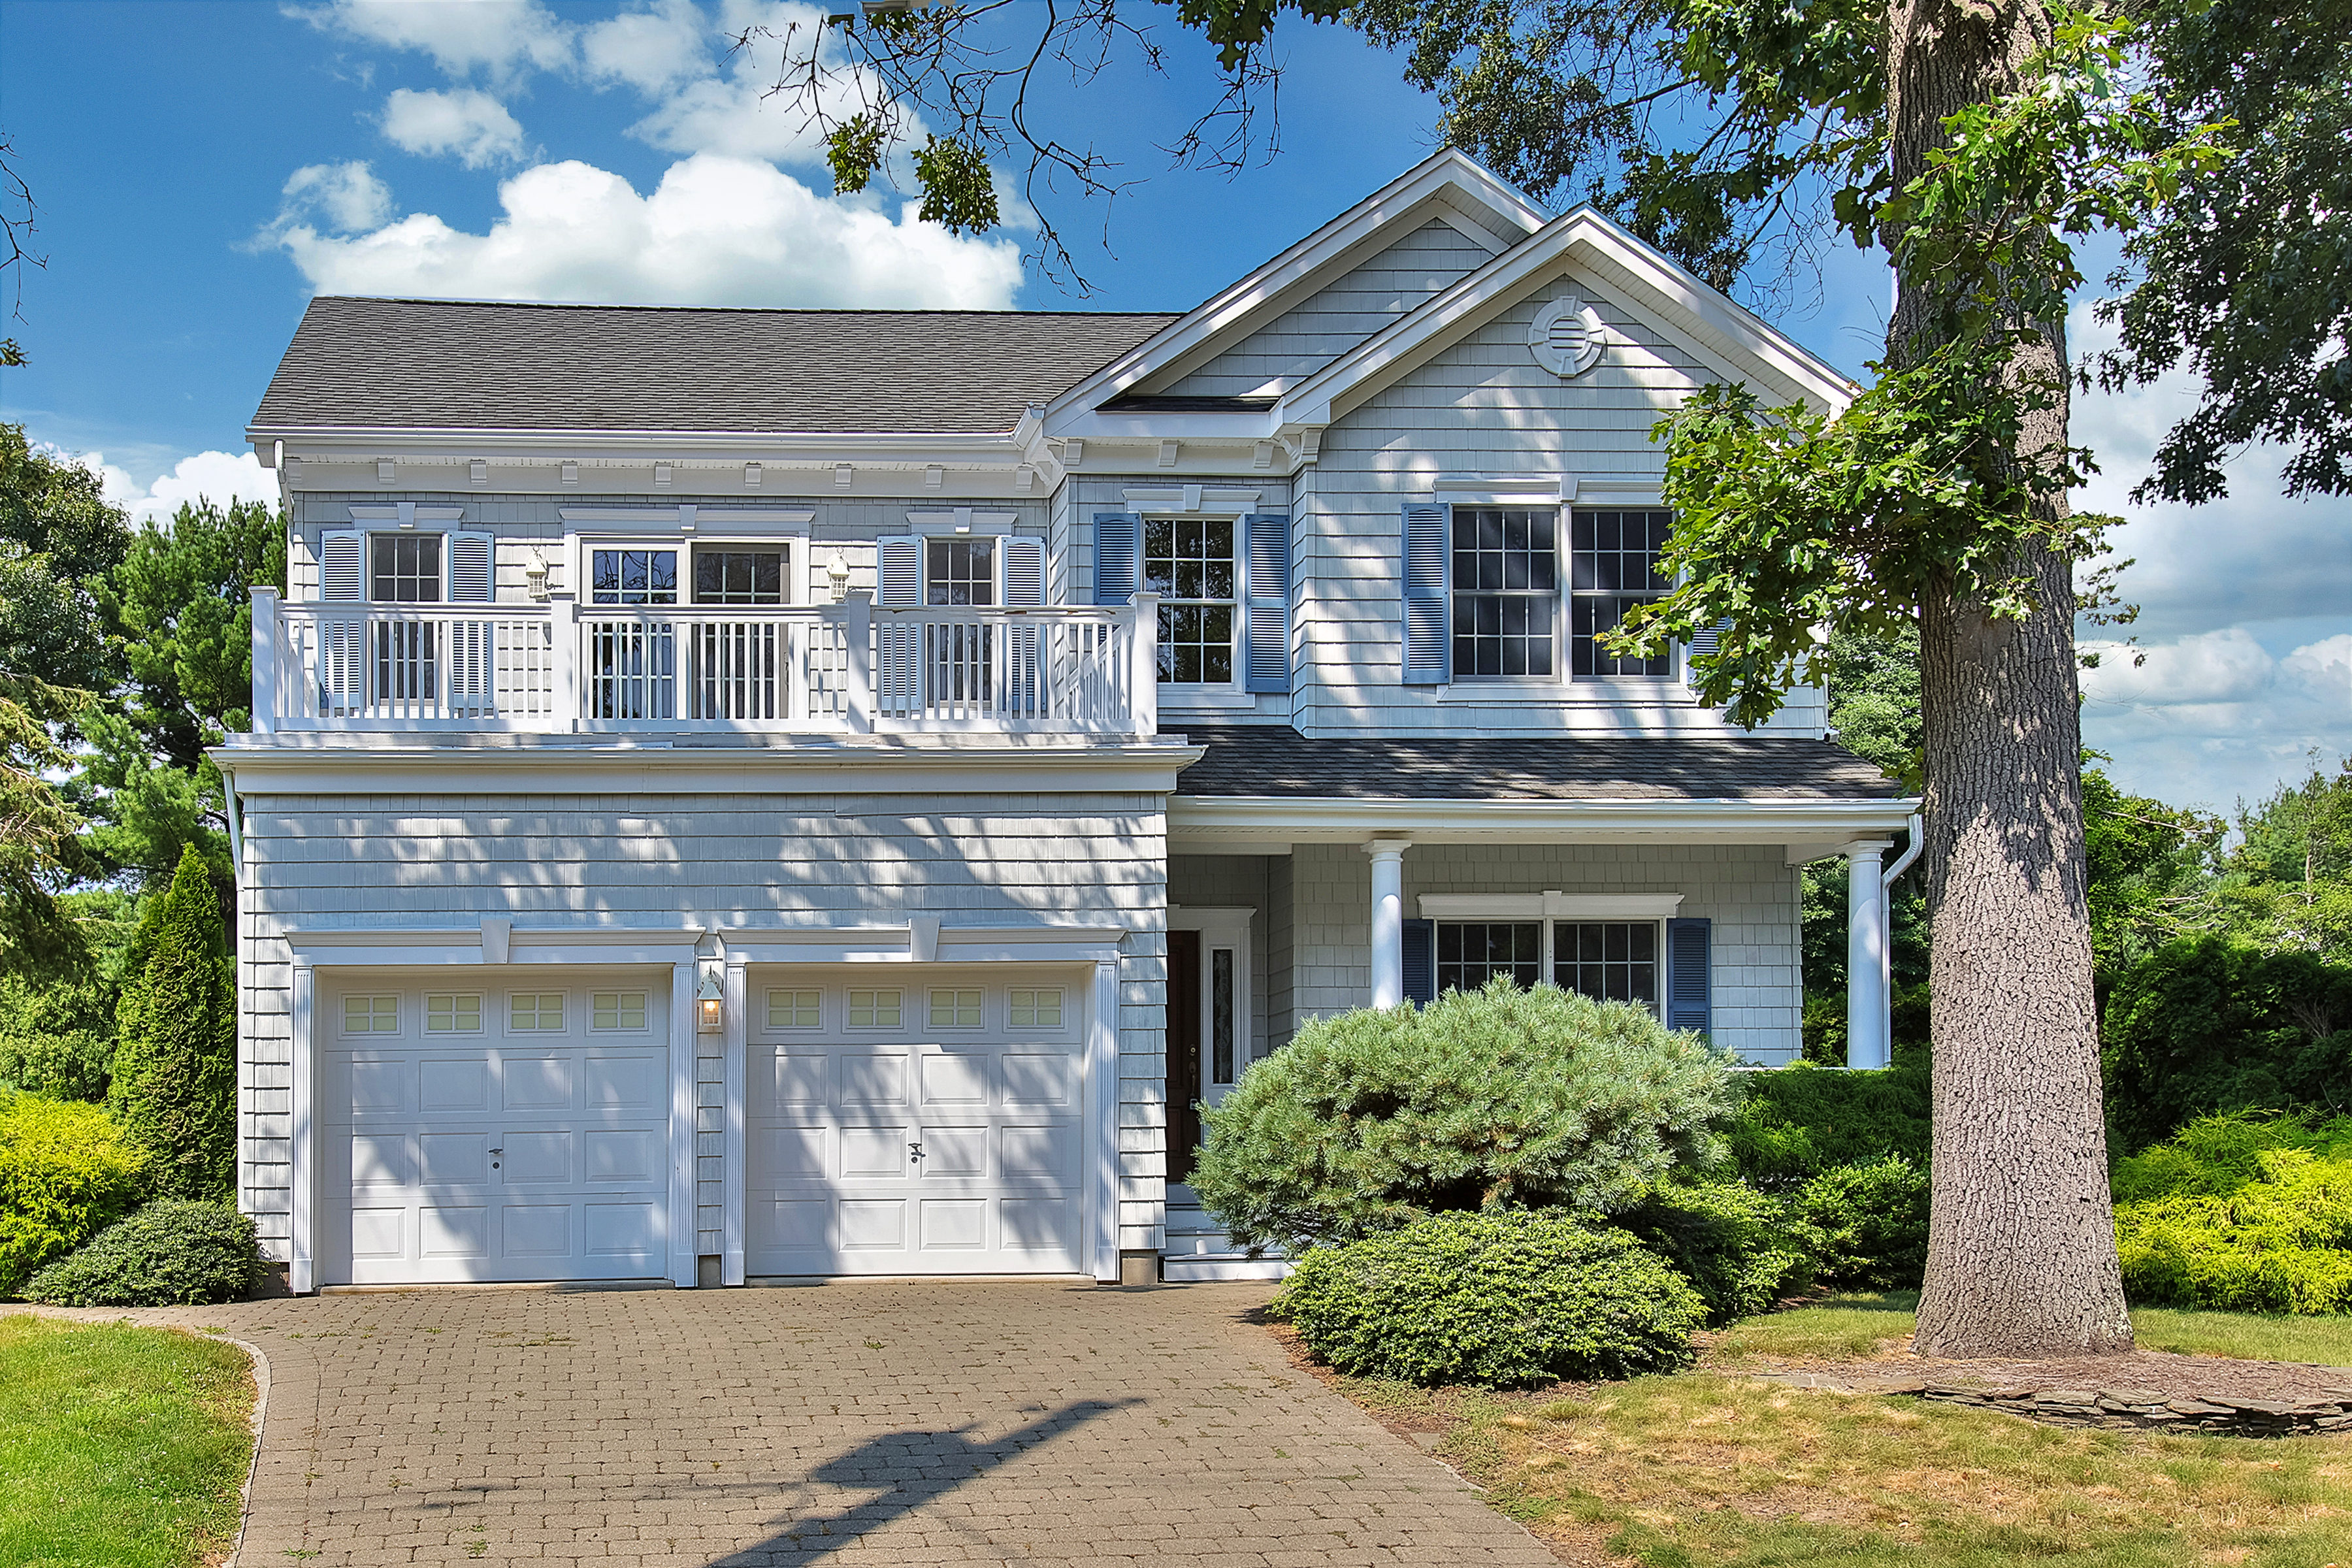 Single Family Home for Sale at Classic Seashore Colonial 2217 2nd Ave Spring Lake, New Jersey 07762 United States